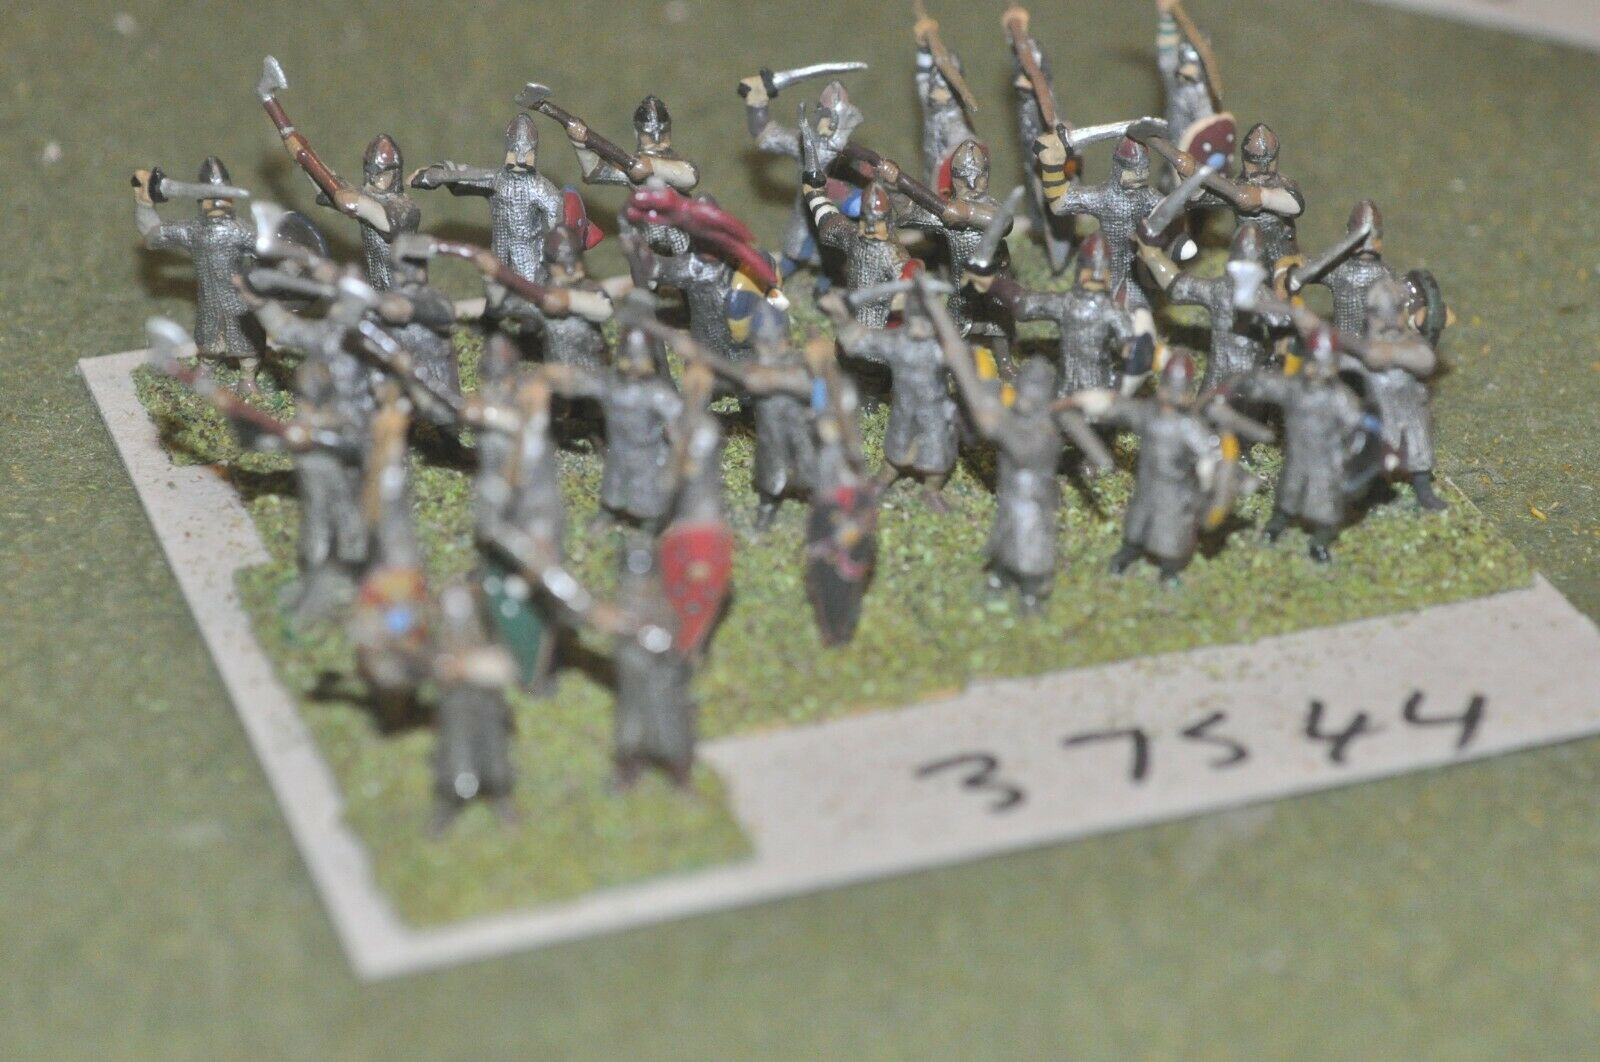 25mm edades Oscuro anglo-danés-husCochels 32 figuras-INF (37544)